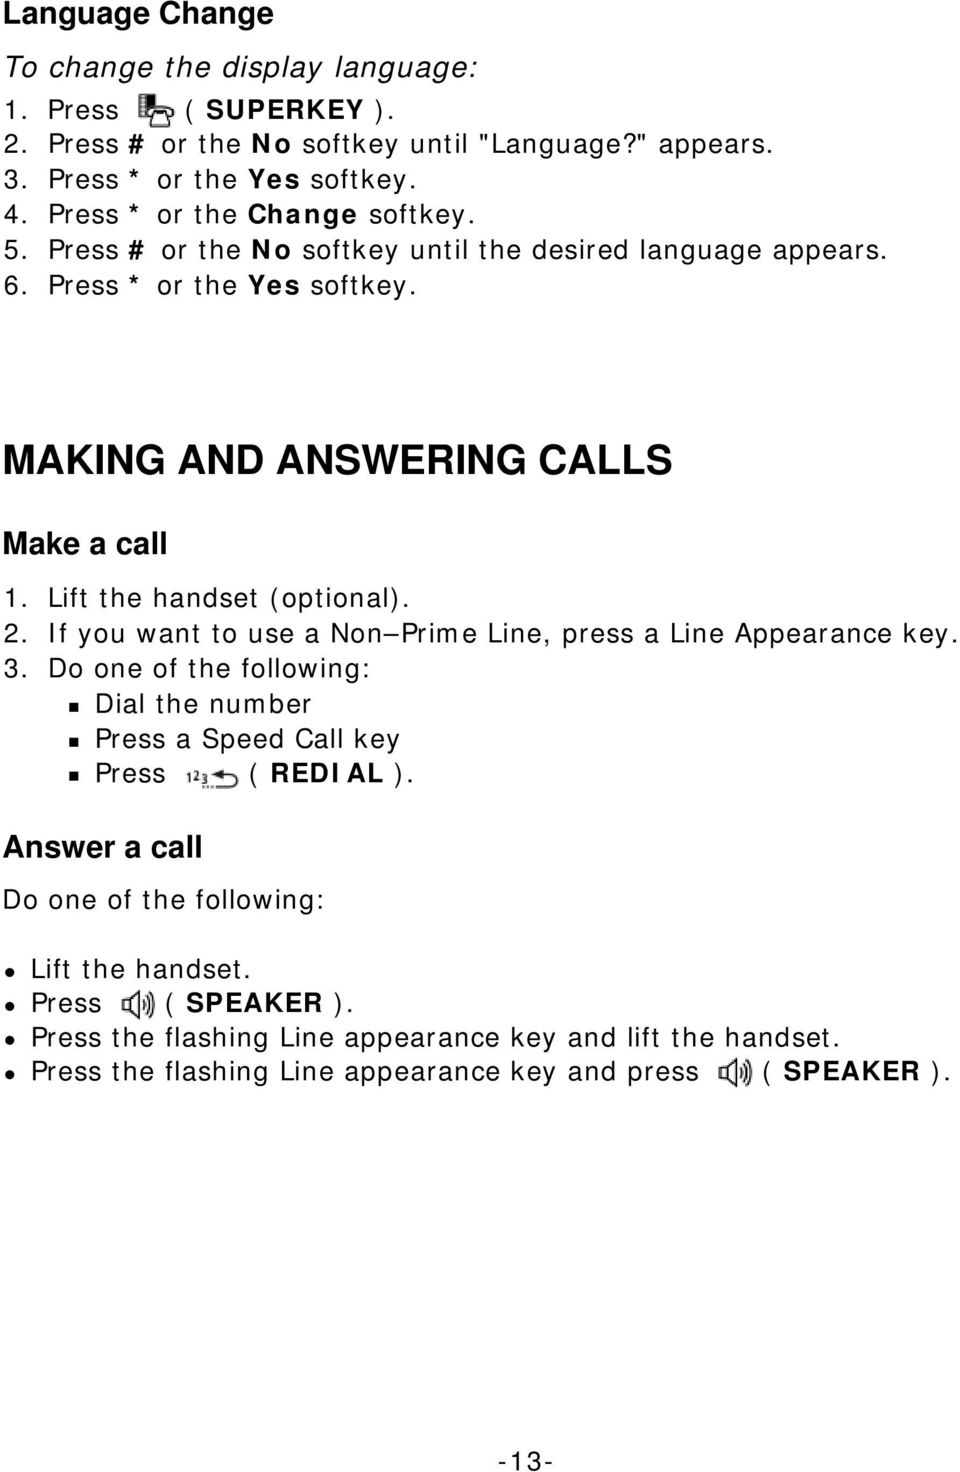 Lift the handset (optional). 2. If you want to use a Non Prime Line, press a Line Appearance key. 3.